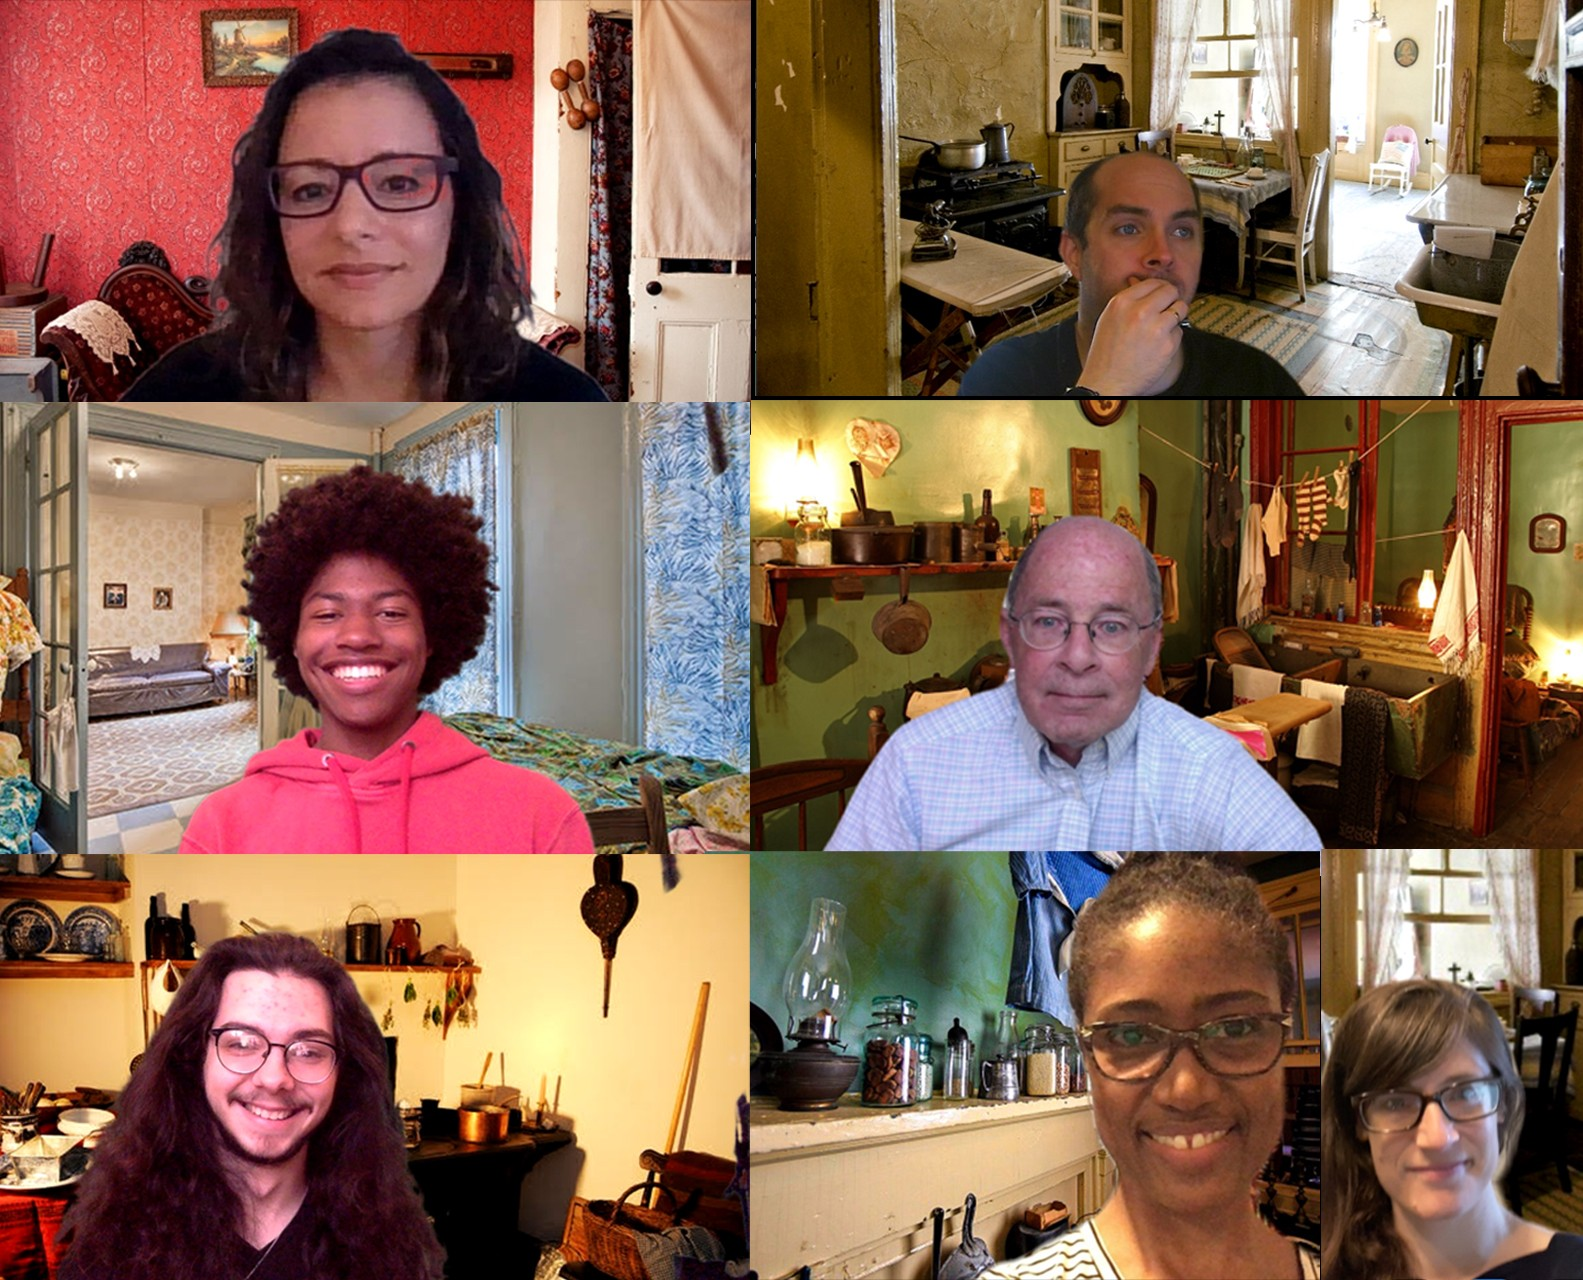 Screenshot from a group video call. Seven Museum staff members smile in front of Tenement-themed virtual backgrounds.